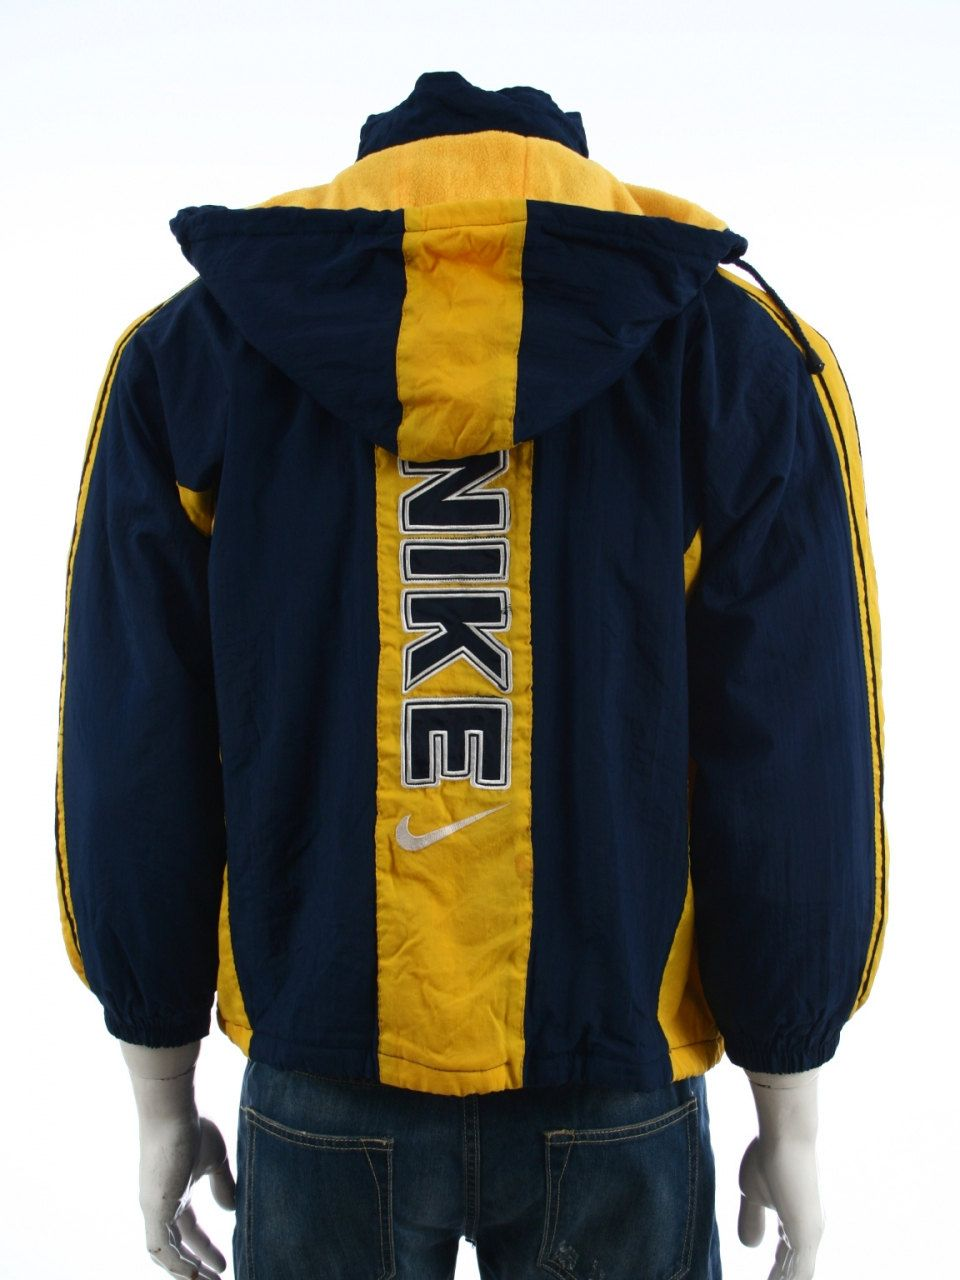 984b0a827d Vintage 90s Nike Swoosh Big logo Spell Out Quilted Winter jacket Color  Block Blue Yellow Size S by VapeoVintage on Etsy